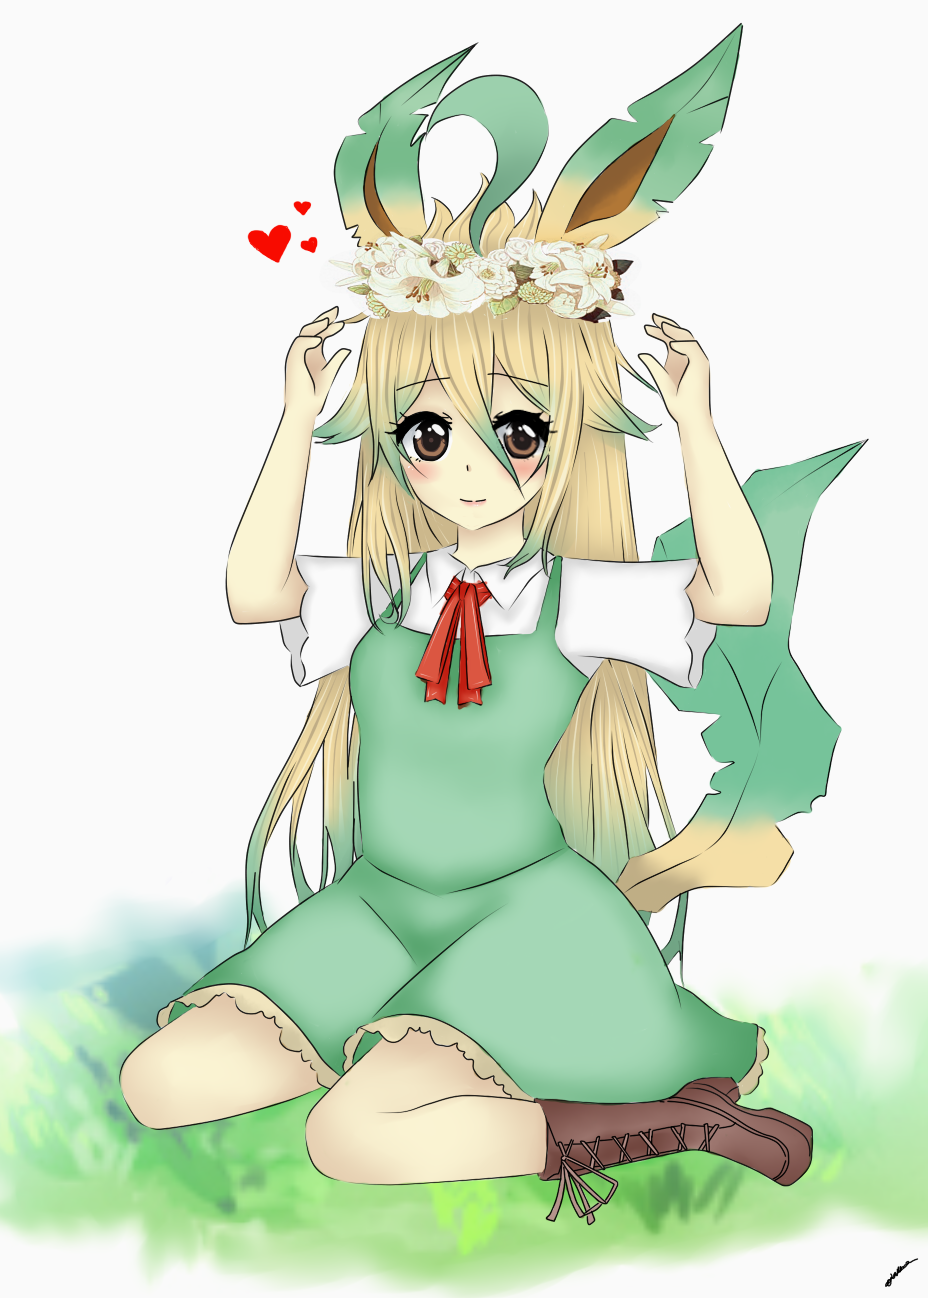 Human Leafeon. by Nirvna-chan on DeviantArt